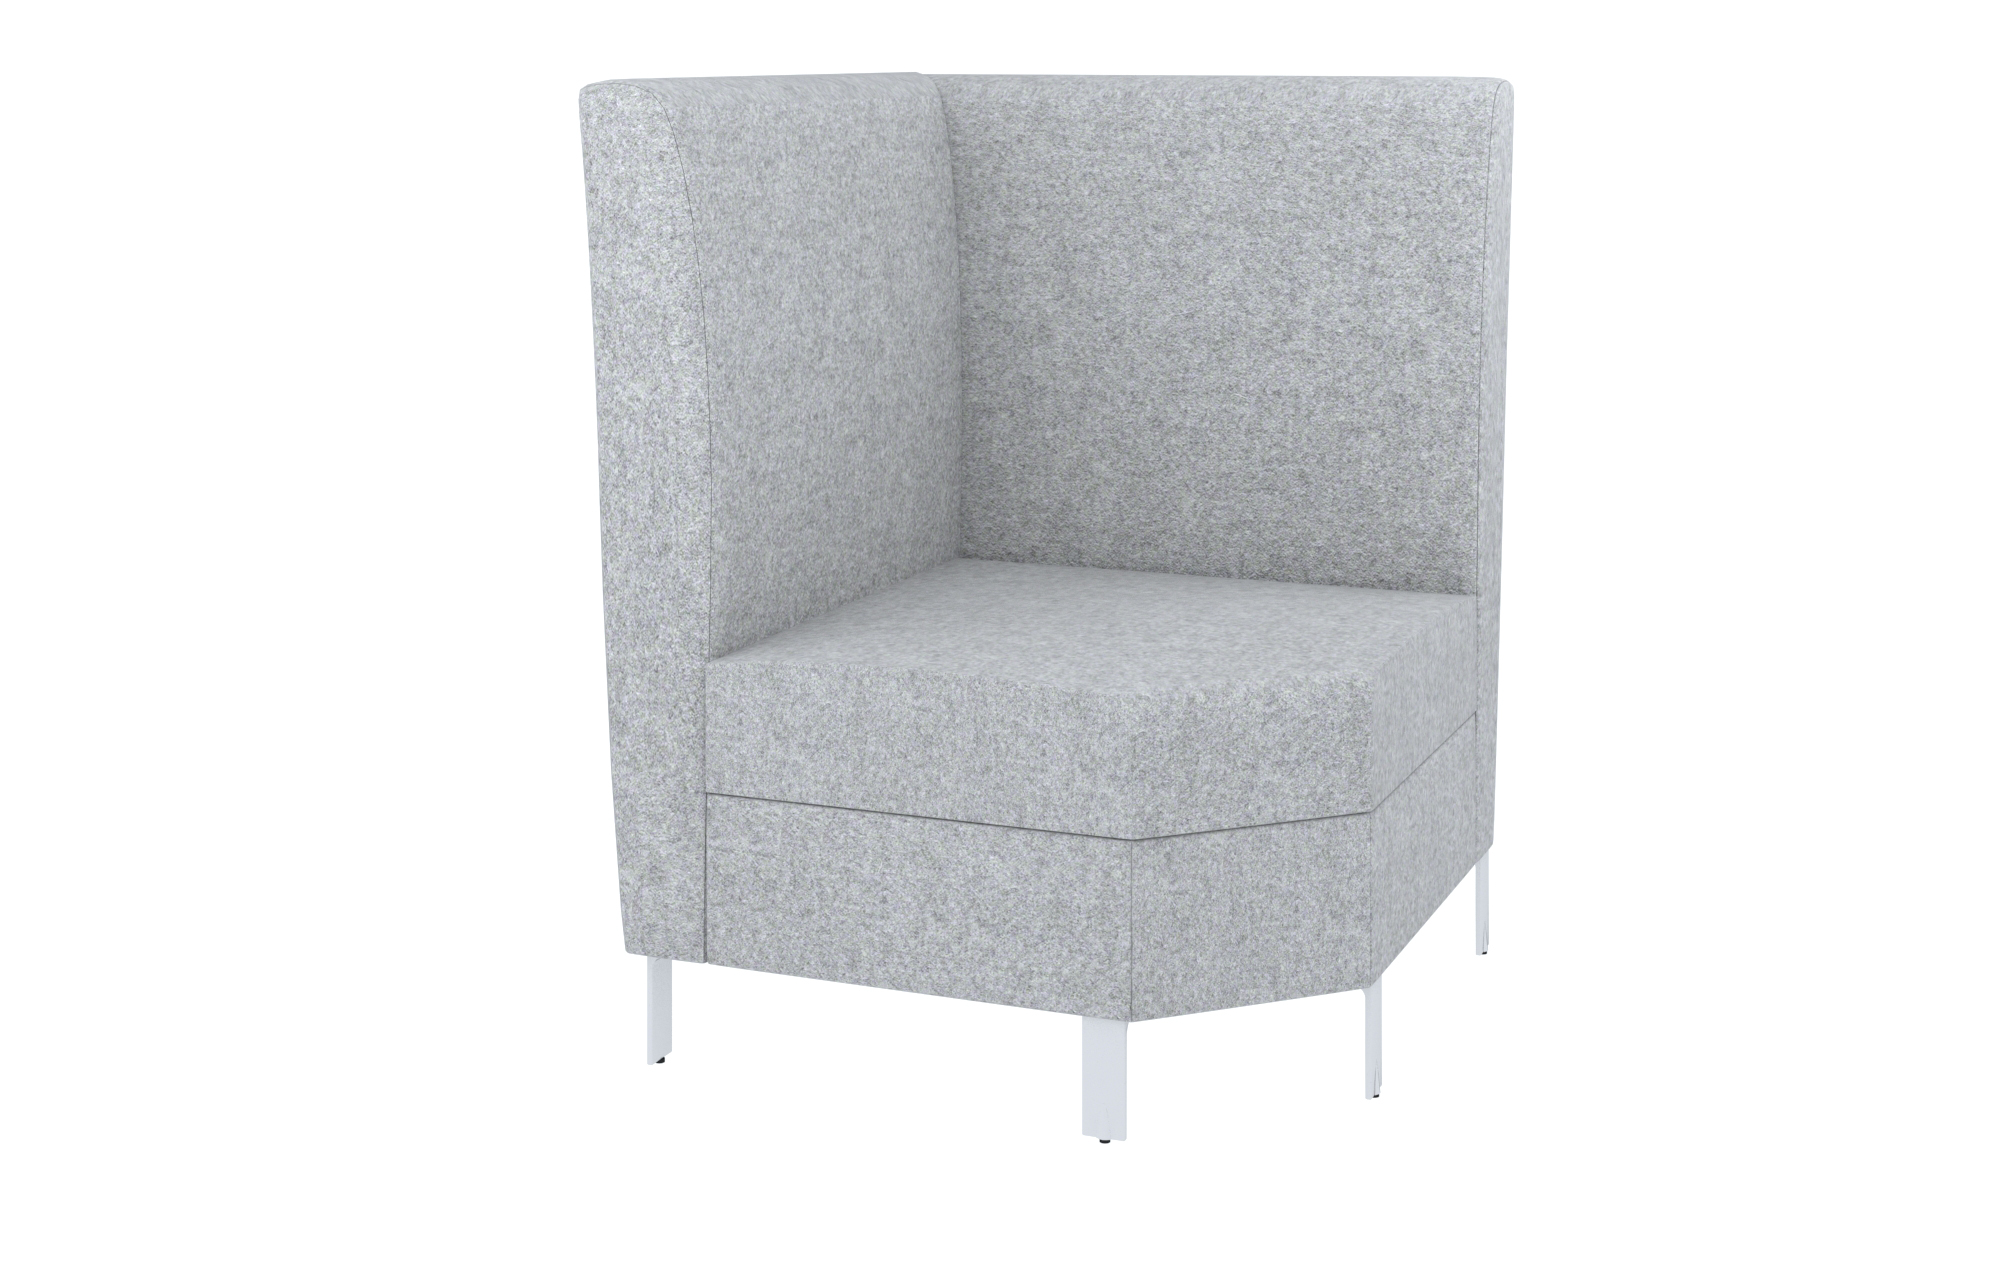 Hickory Contract Gemini Modular Lounge GE-313